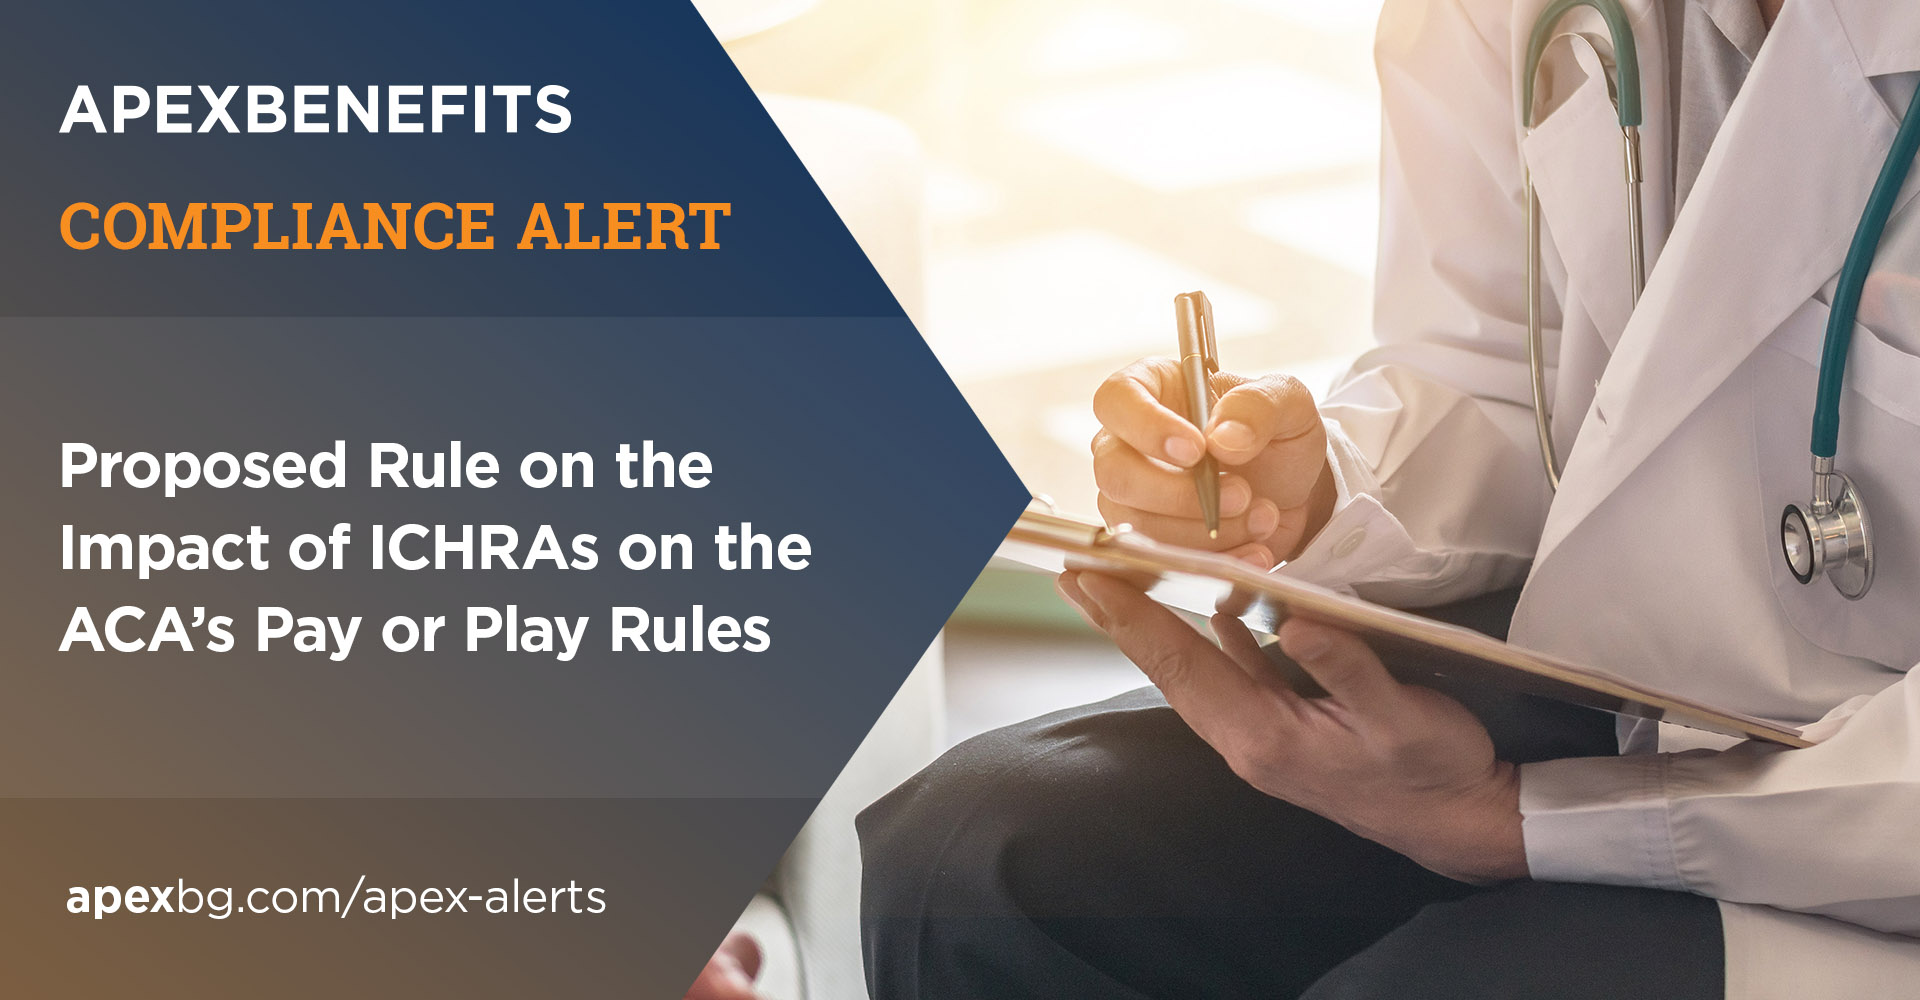 Compliance Alert: Proposed Rule on the Impact of ICHRAs on the ACA's Pay or Play Rules